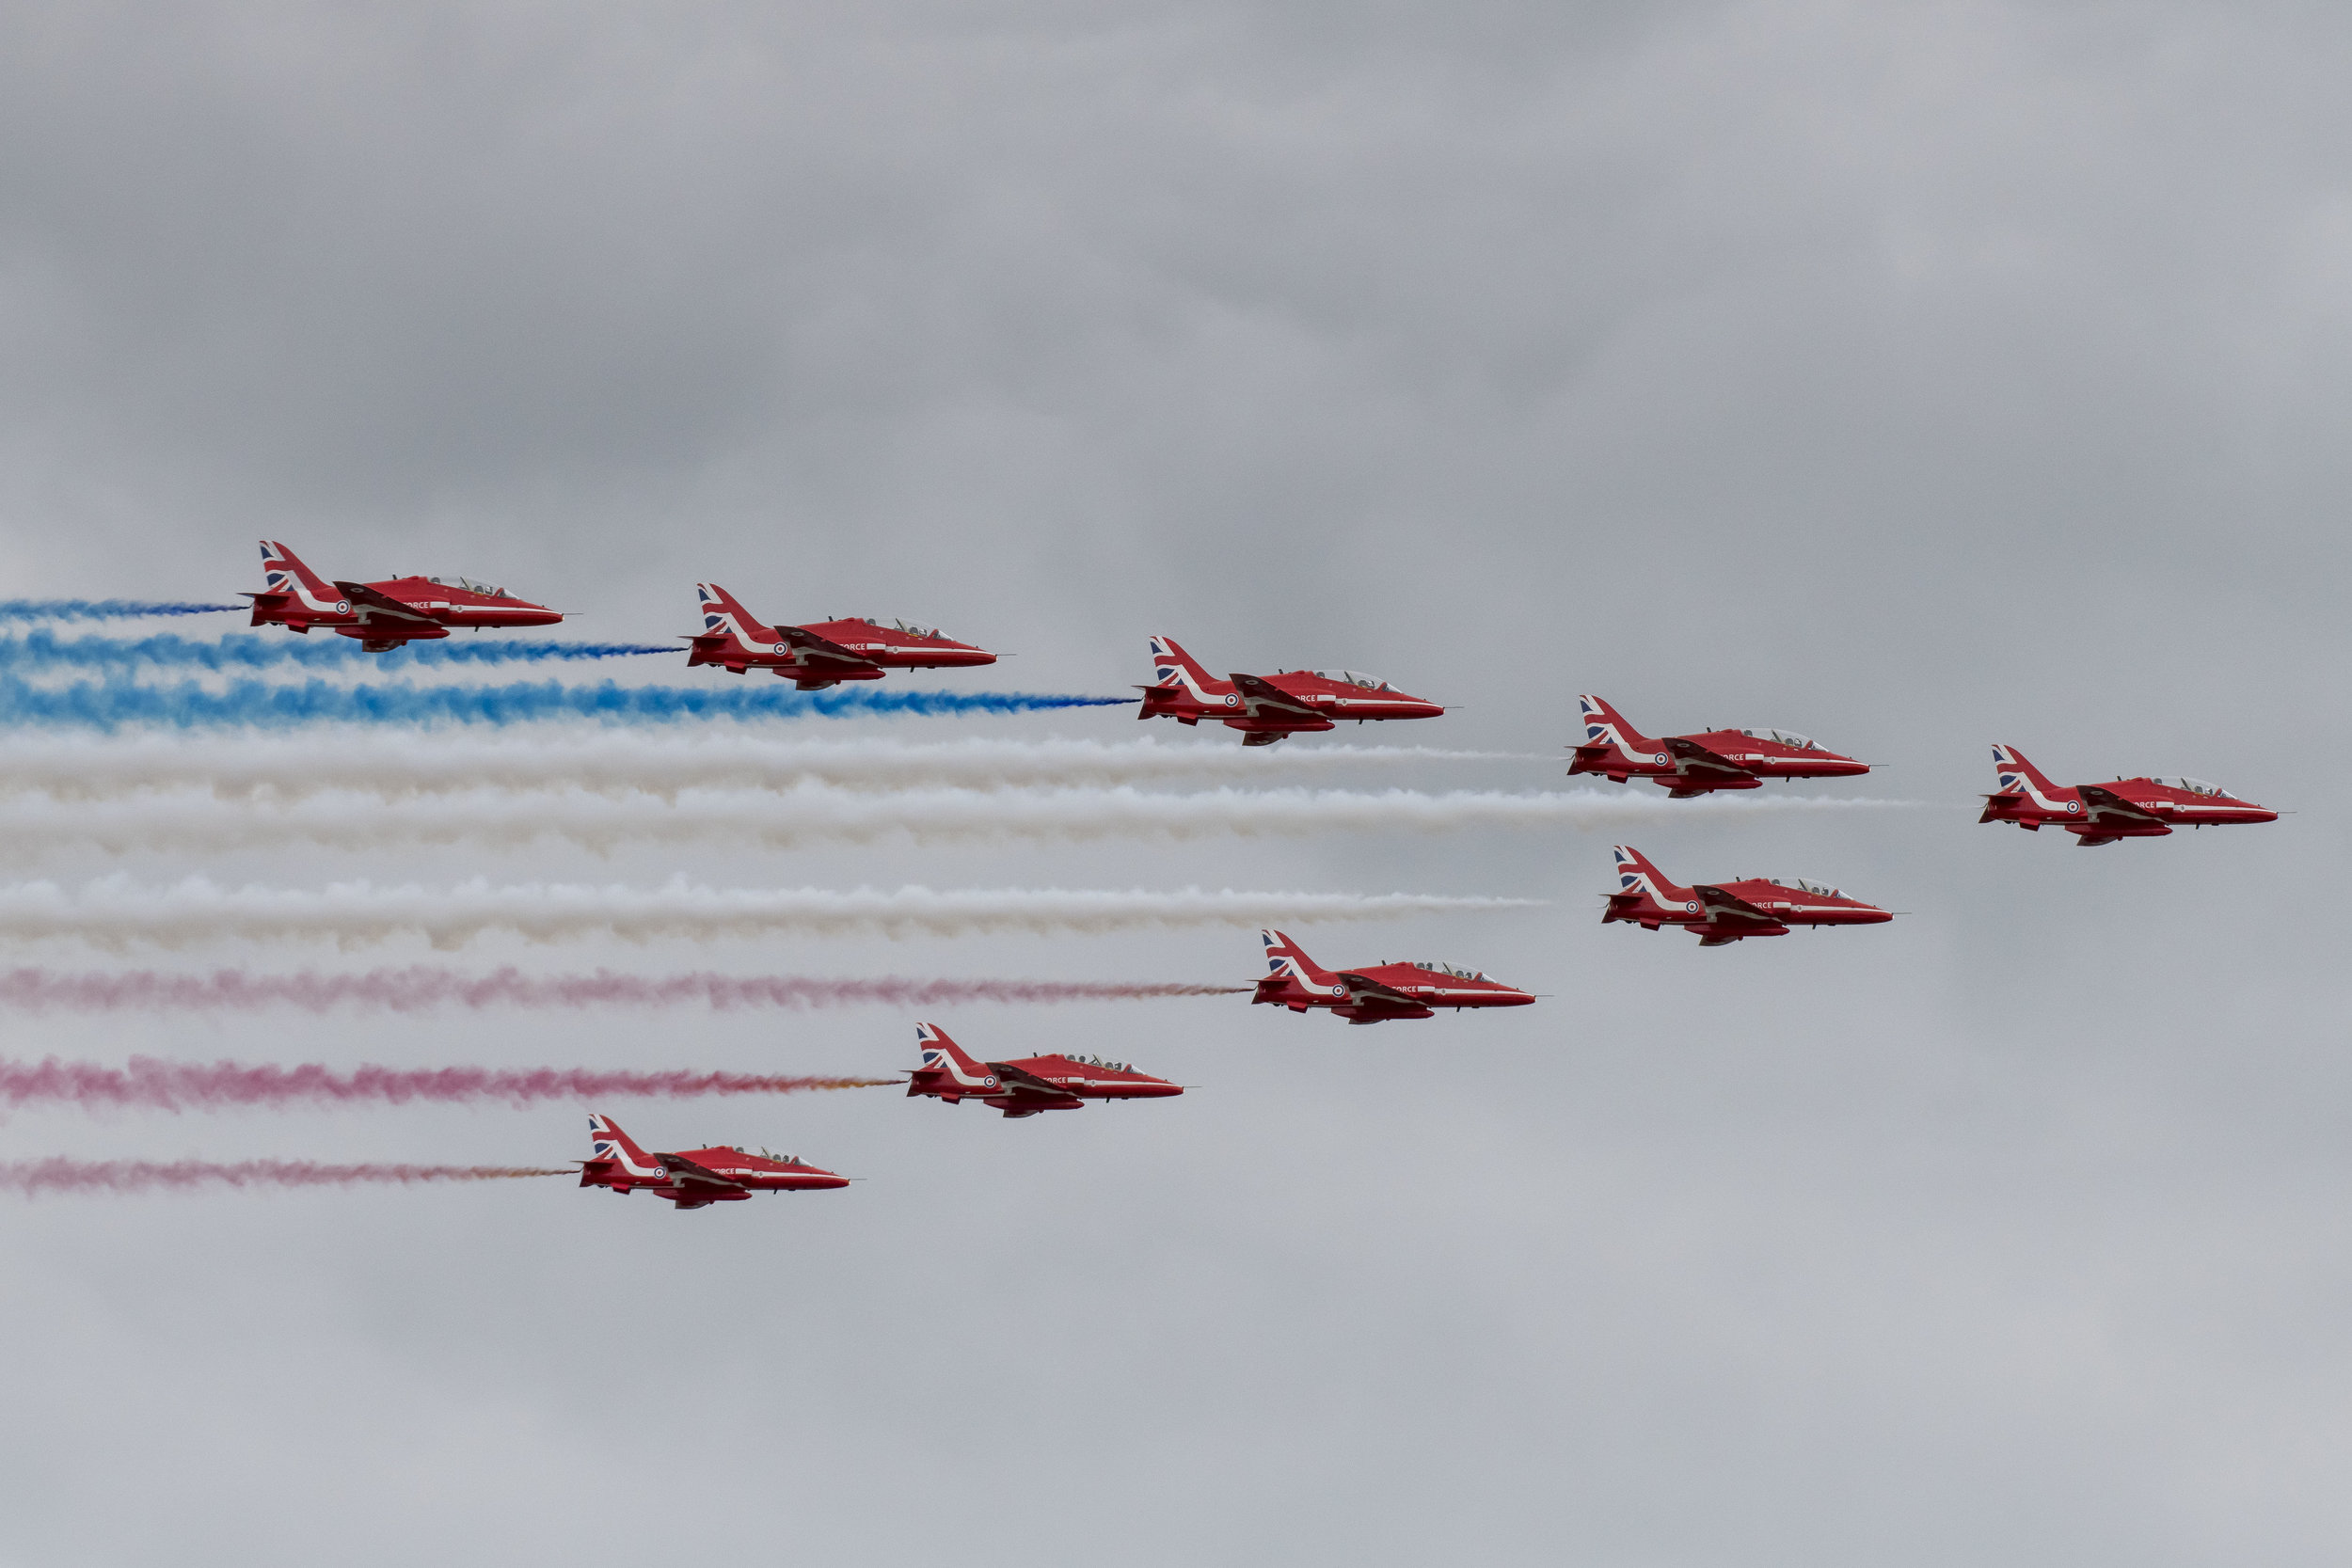 FAIRFORD, ENGLAND - JULY 21: The Red Arrows (BAE Hawk) perform during the International Air Tattoo at RAF Fairford on July 21, 2019 in Fairford, England. The Royal International Air Tattoo (RIAT) is the world's largest military air show, held in support of The Royal Air Force Charitable Trust. (Photo by Matthew Horwood/Getty Images)